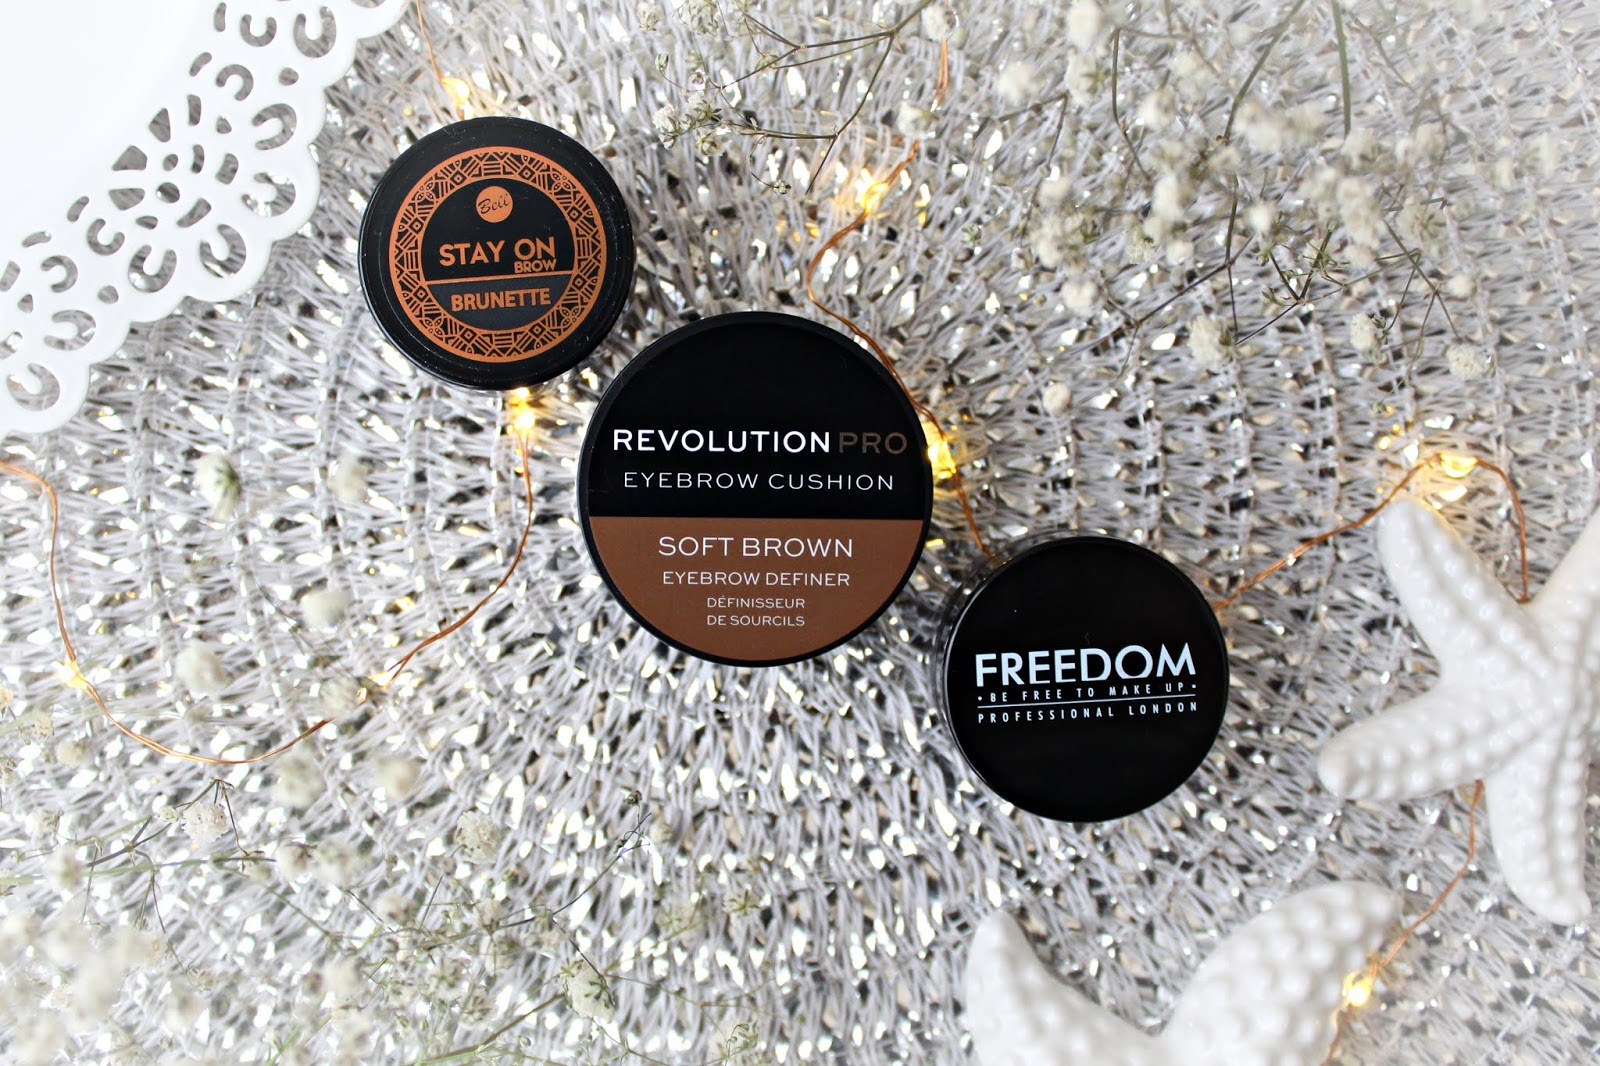 Freedom Pro Brow Pomade, Revolution Pro Eyebrow Cushion oraz Bell Stay On Brow - porównanie 3 pomad do brwi